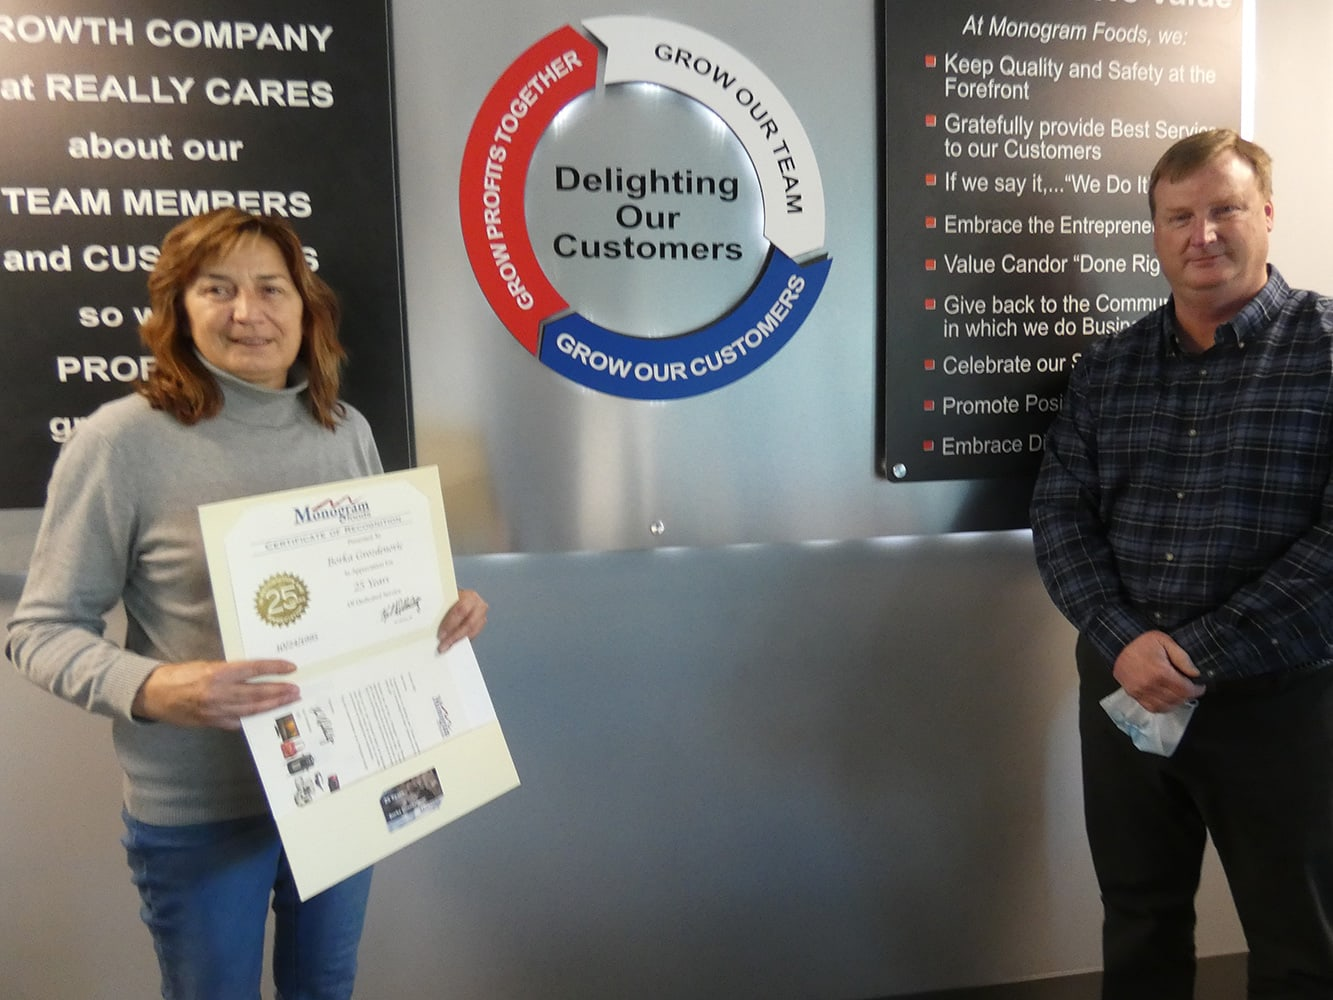 Wilmington employee receives certificate for 25 years of service